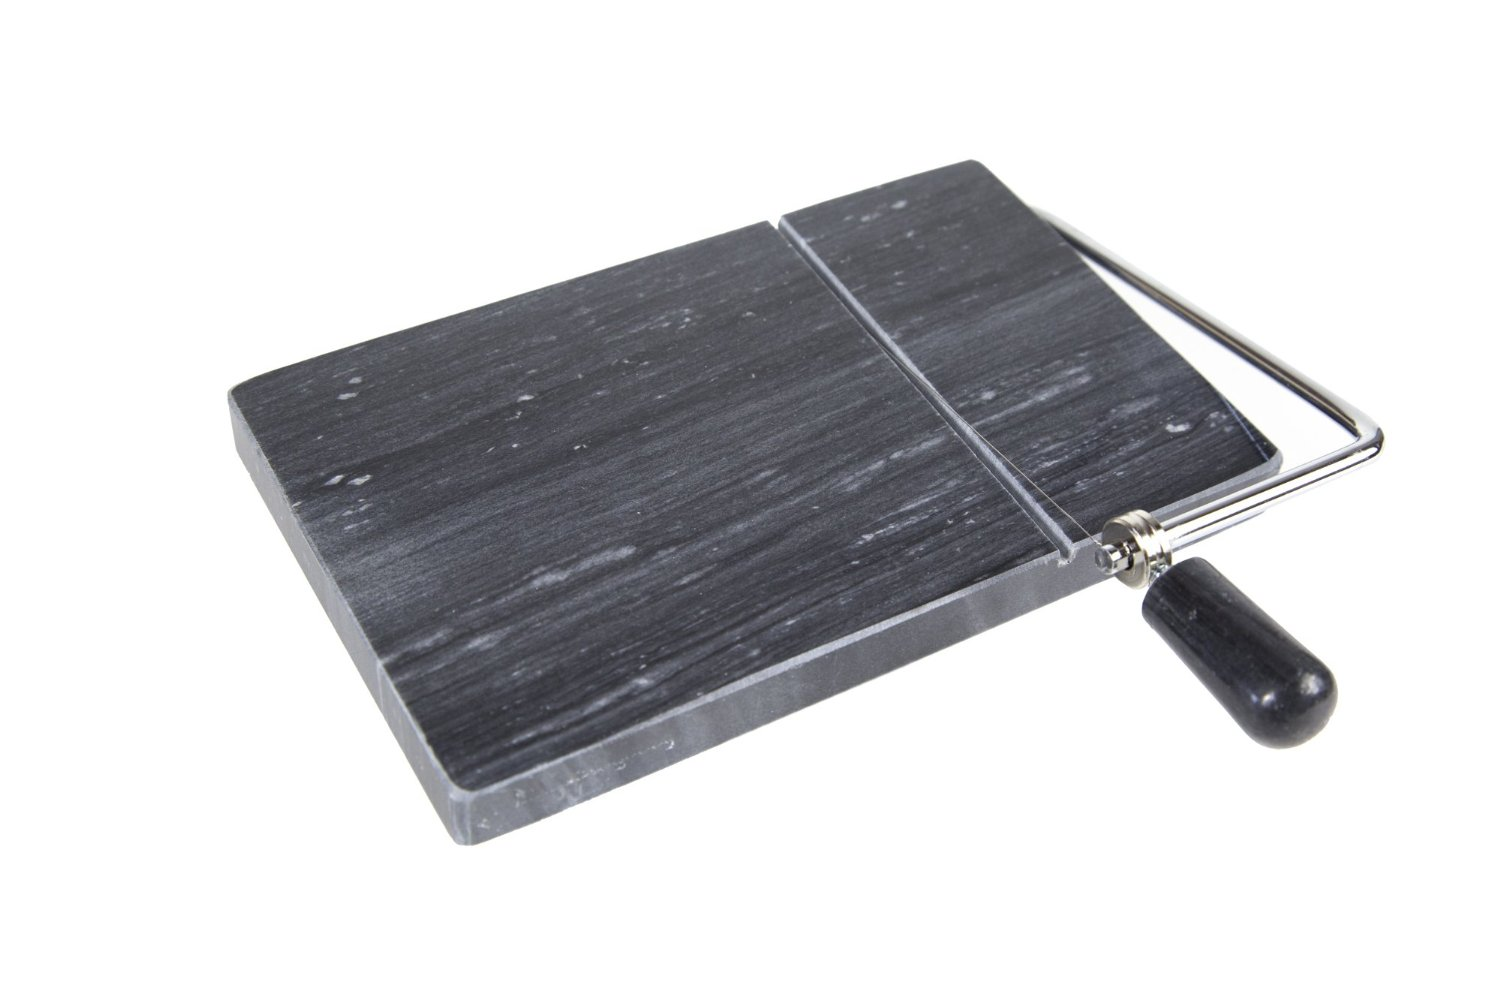 Fox Run Black Marble Cheese Slicer